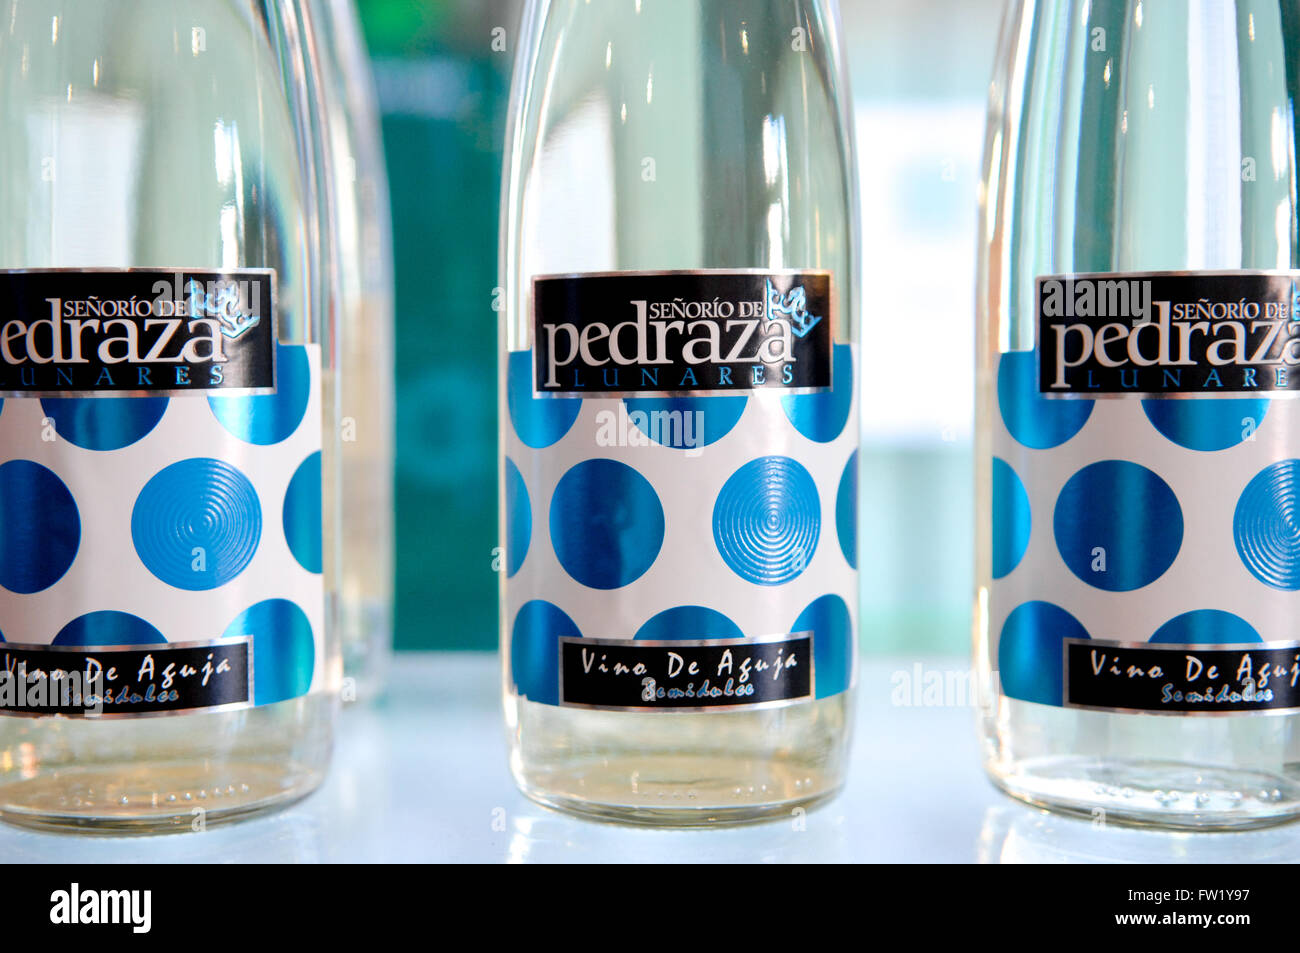 Pedraza is a wine brand from Spain Andalucia with a sweet flavour  from lunares' winery - Stock Image